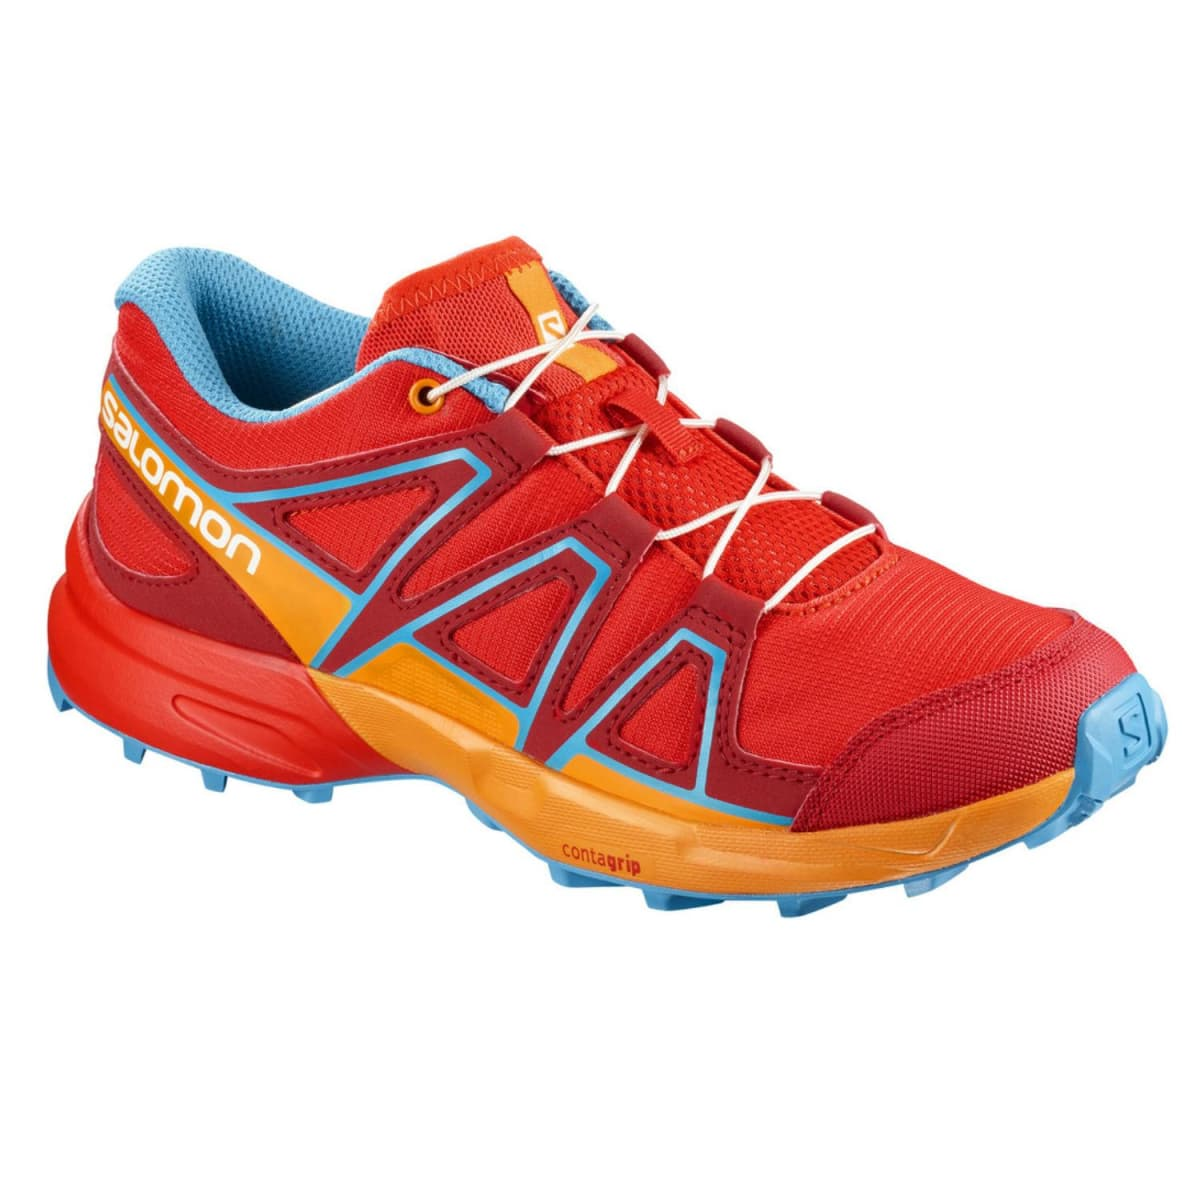 efd326cc Salomon Trail Running Shoes - Sportsmans Warehouse - South Africa